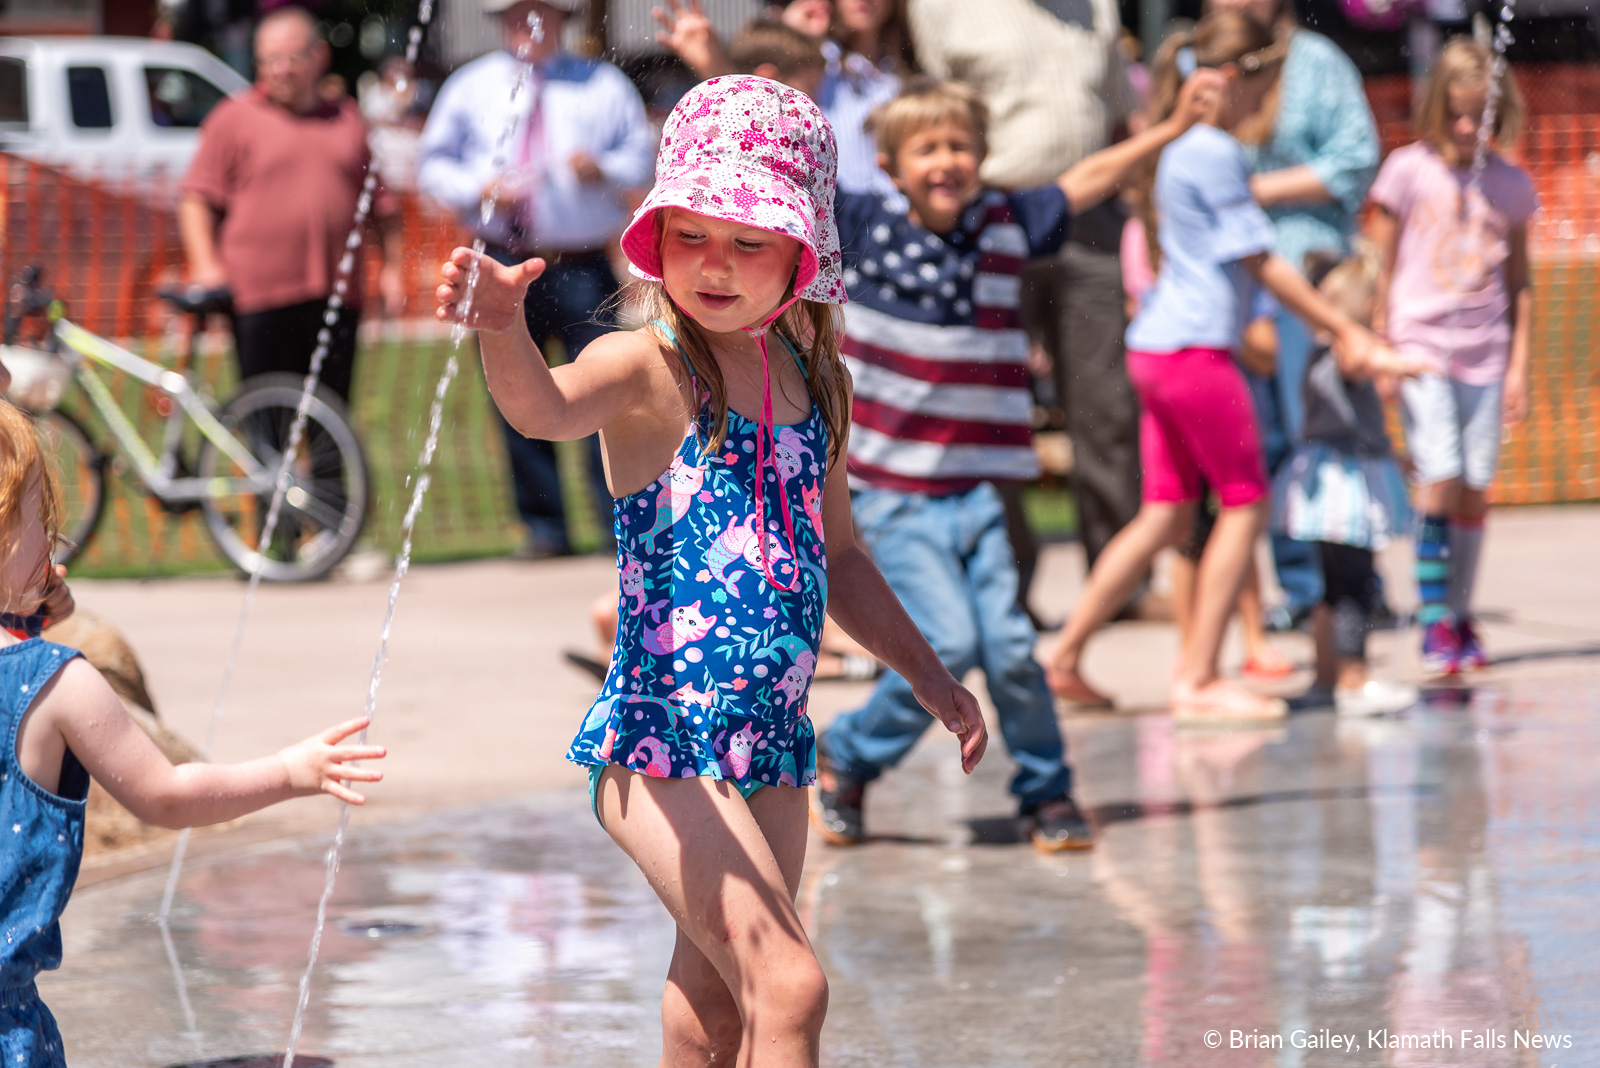 A child plays in the Klamath Commons Splash Pad on opening Day, July 1, 2019 (Image, by Brian Gailey / Klamath Falls News)